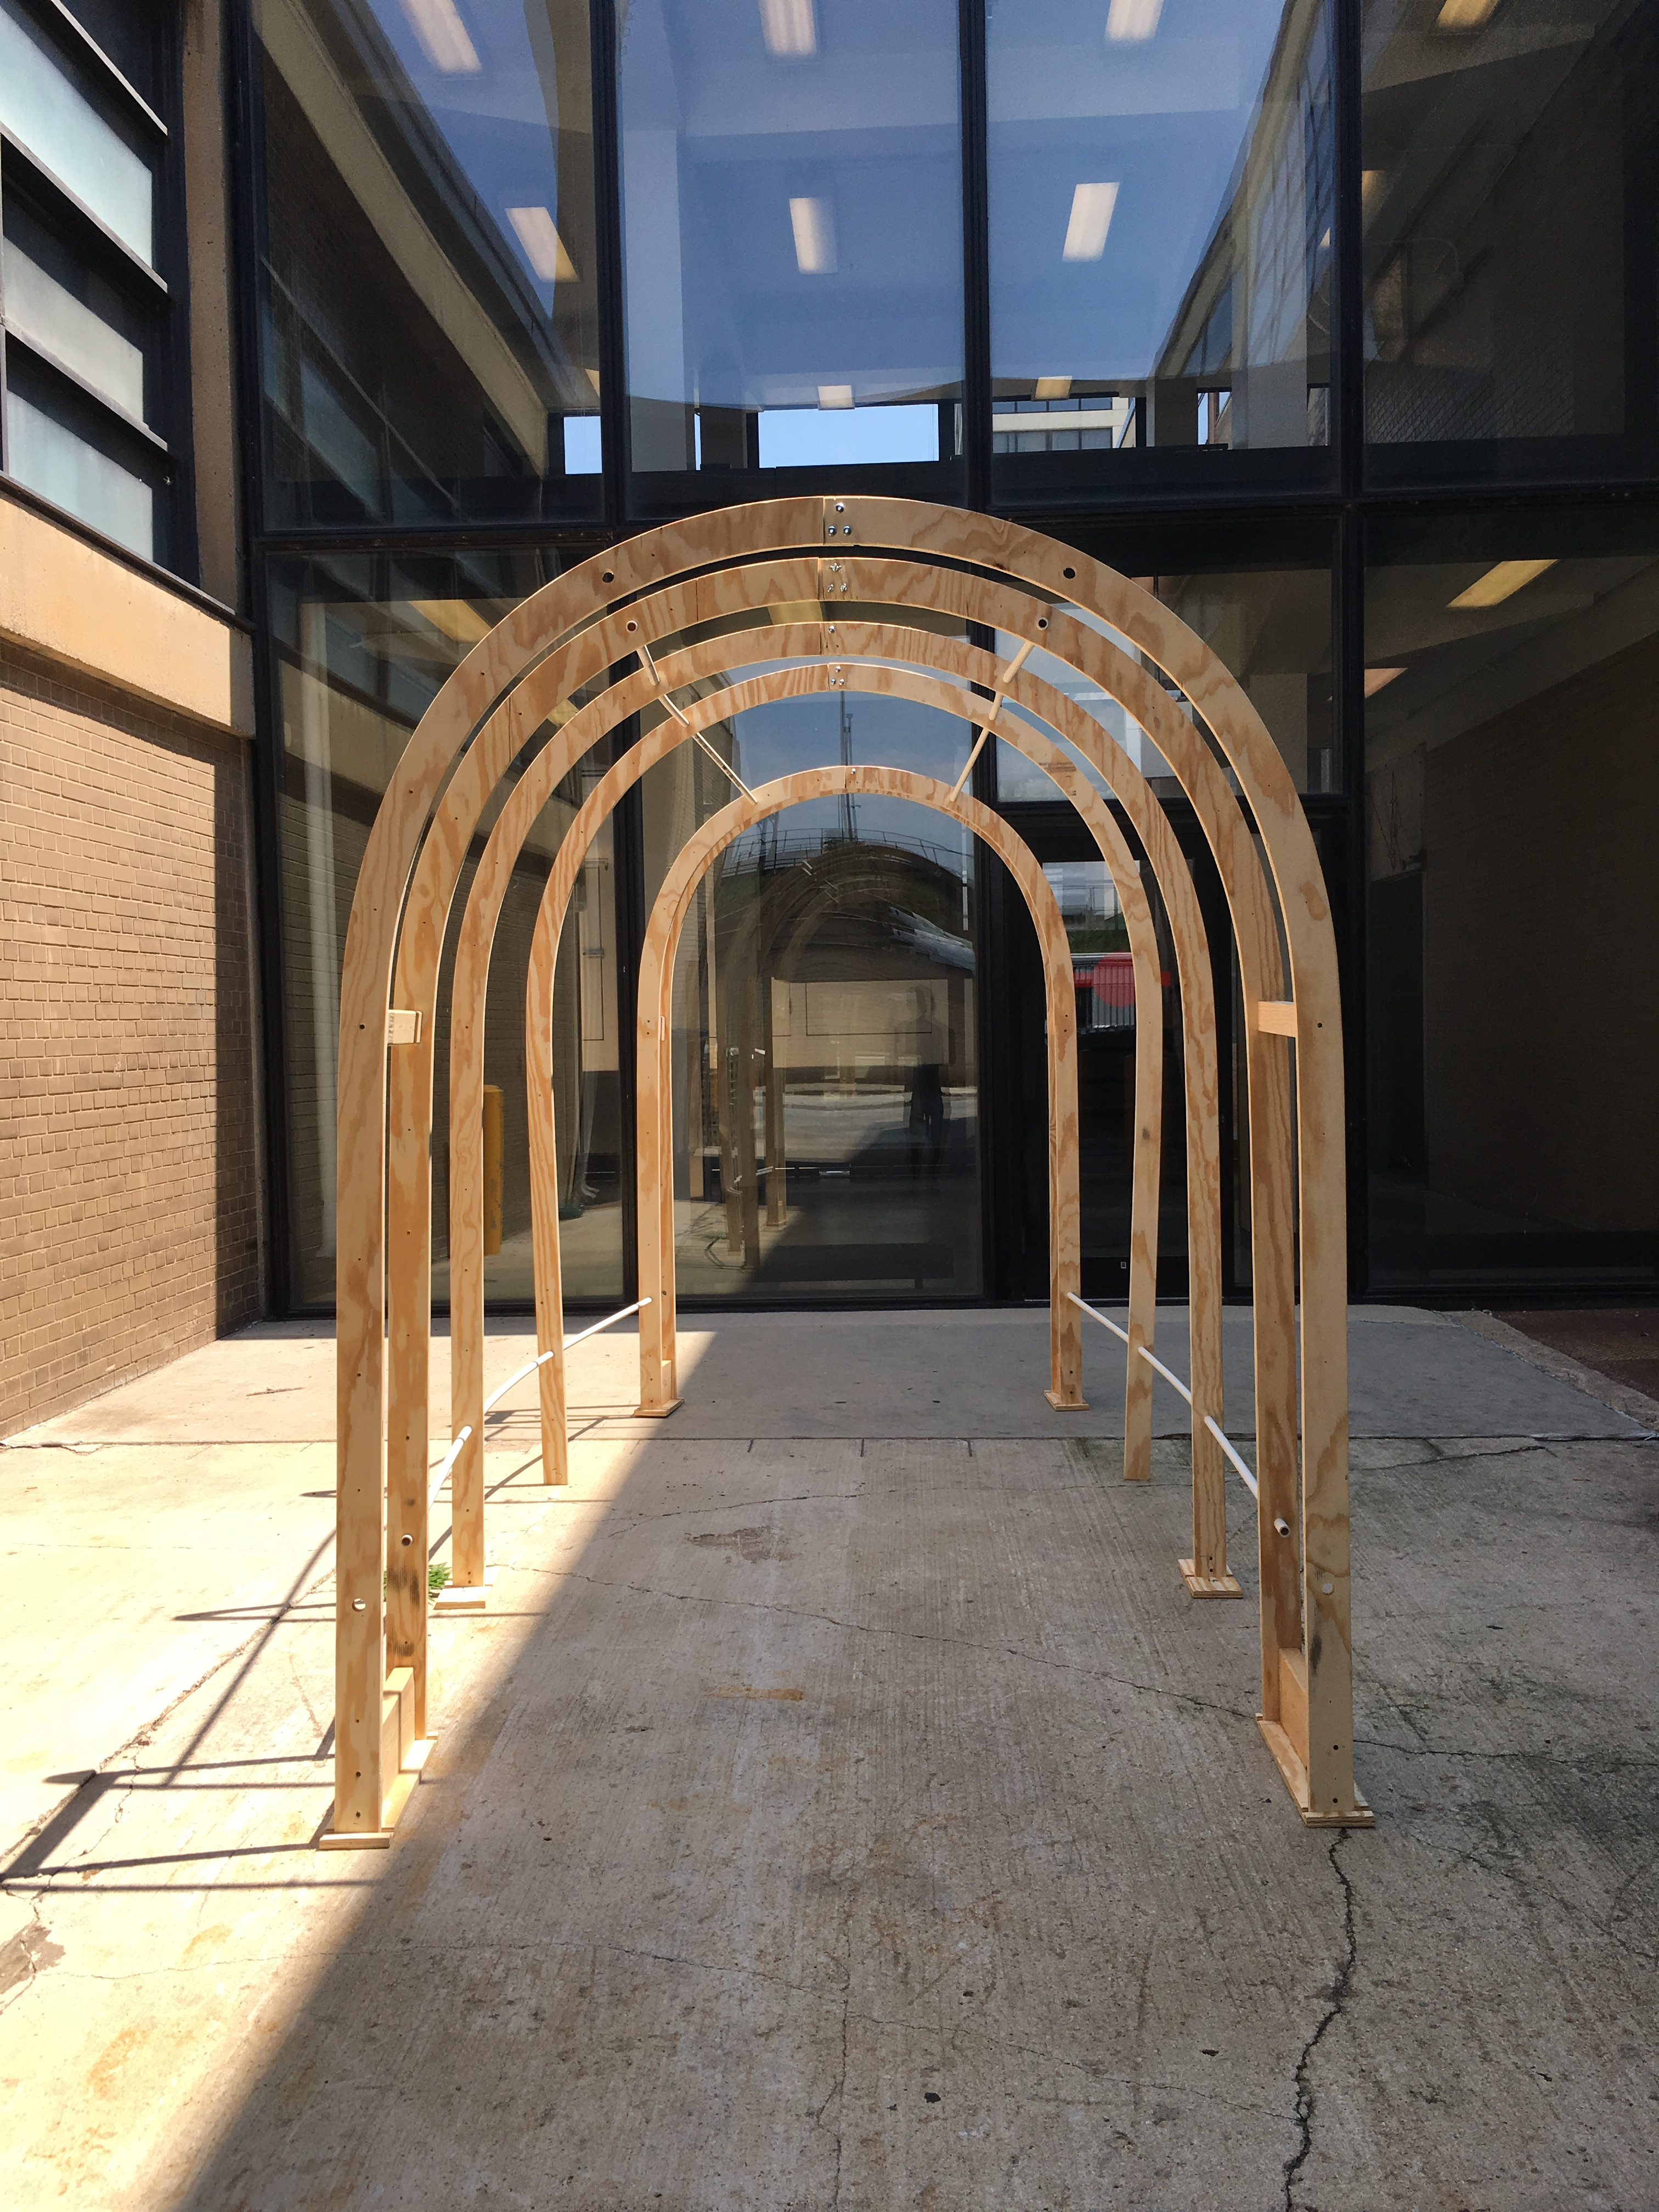 Front view of the Tunnel frame.